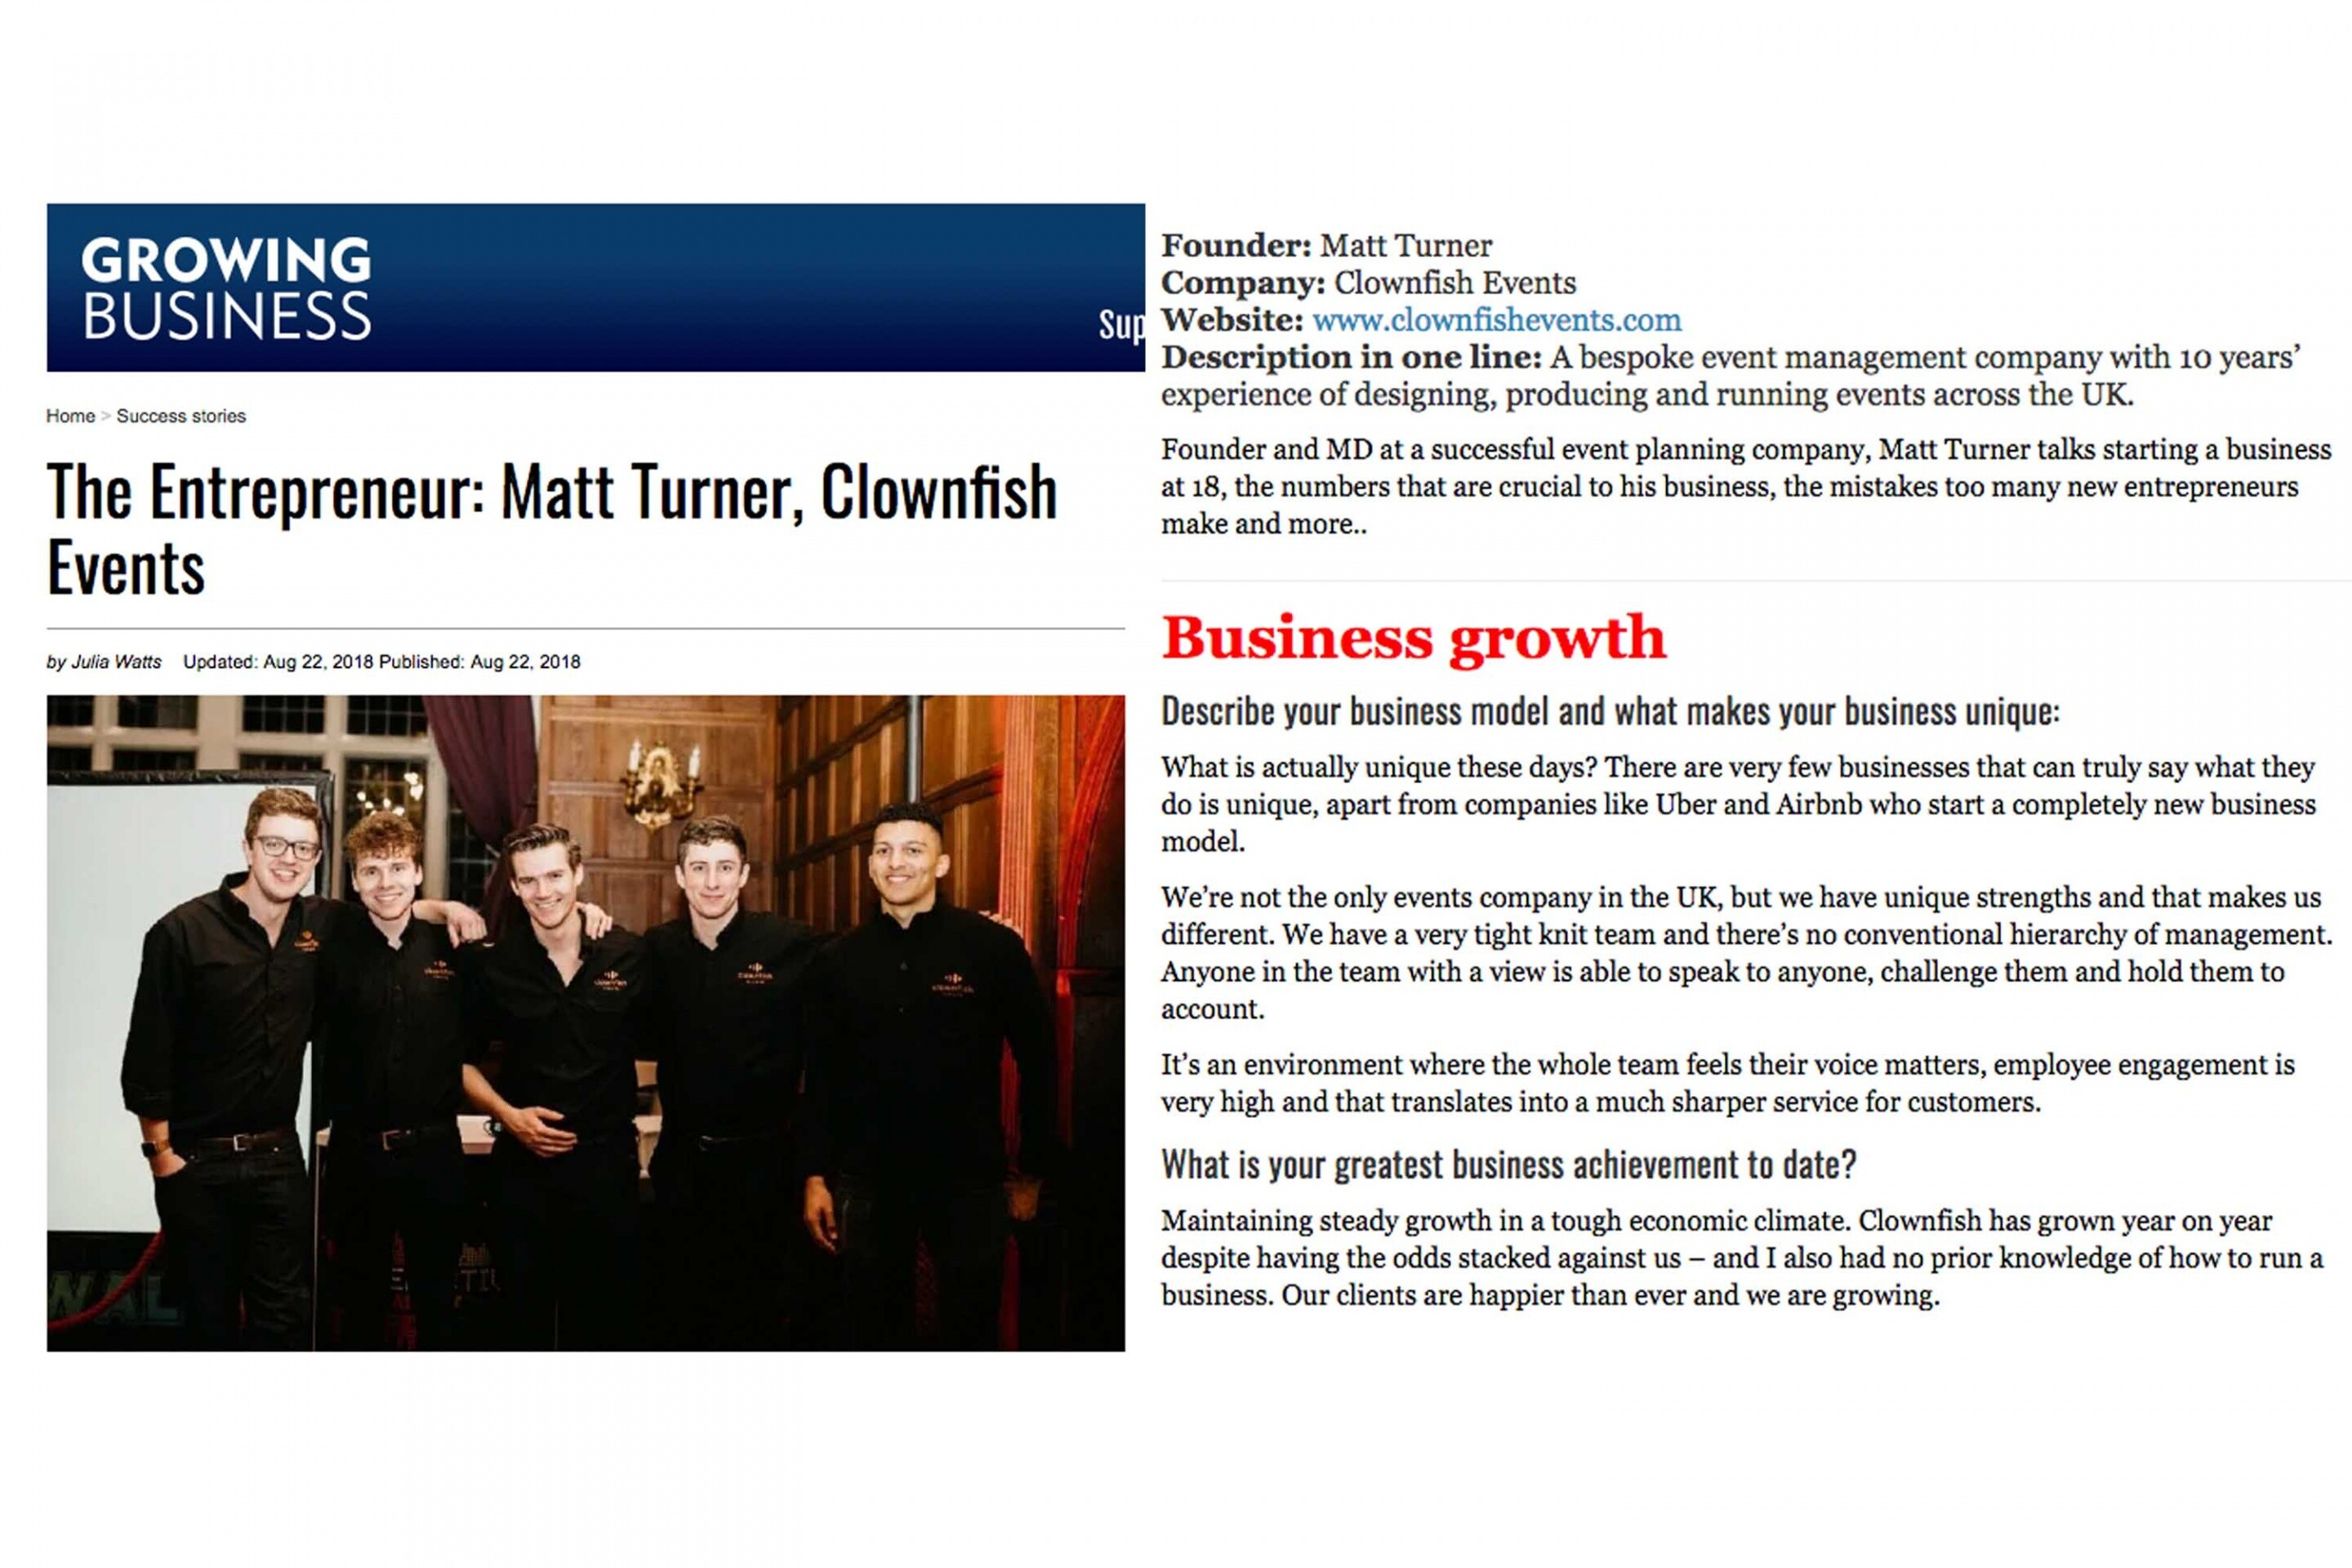 Growing Business 1